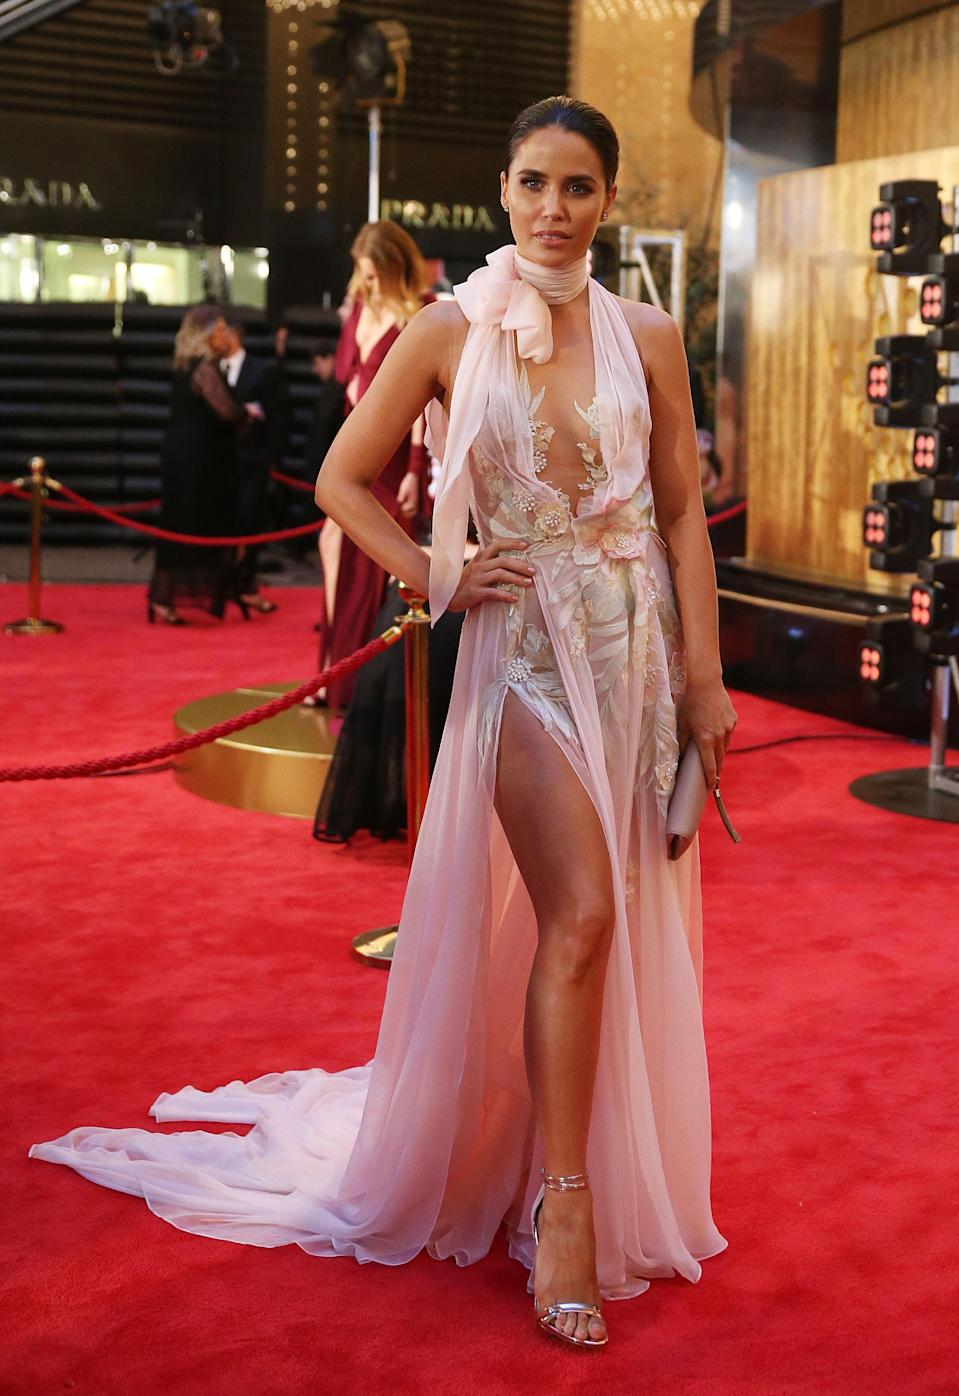 Like Bec Judd, fellow attendee Jodi Anasta's frock should work on paper - but just doesn't hit the mark. The actor-turned-WAG looks swamped in layers of floaty chiffon, and the tie detail at the neck seems like overkill. Photo: Getty Images.